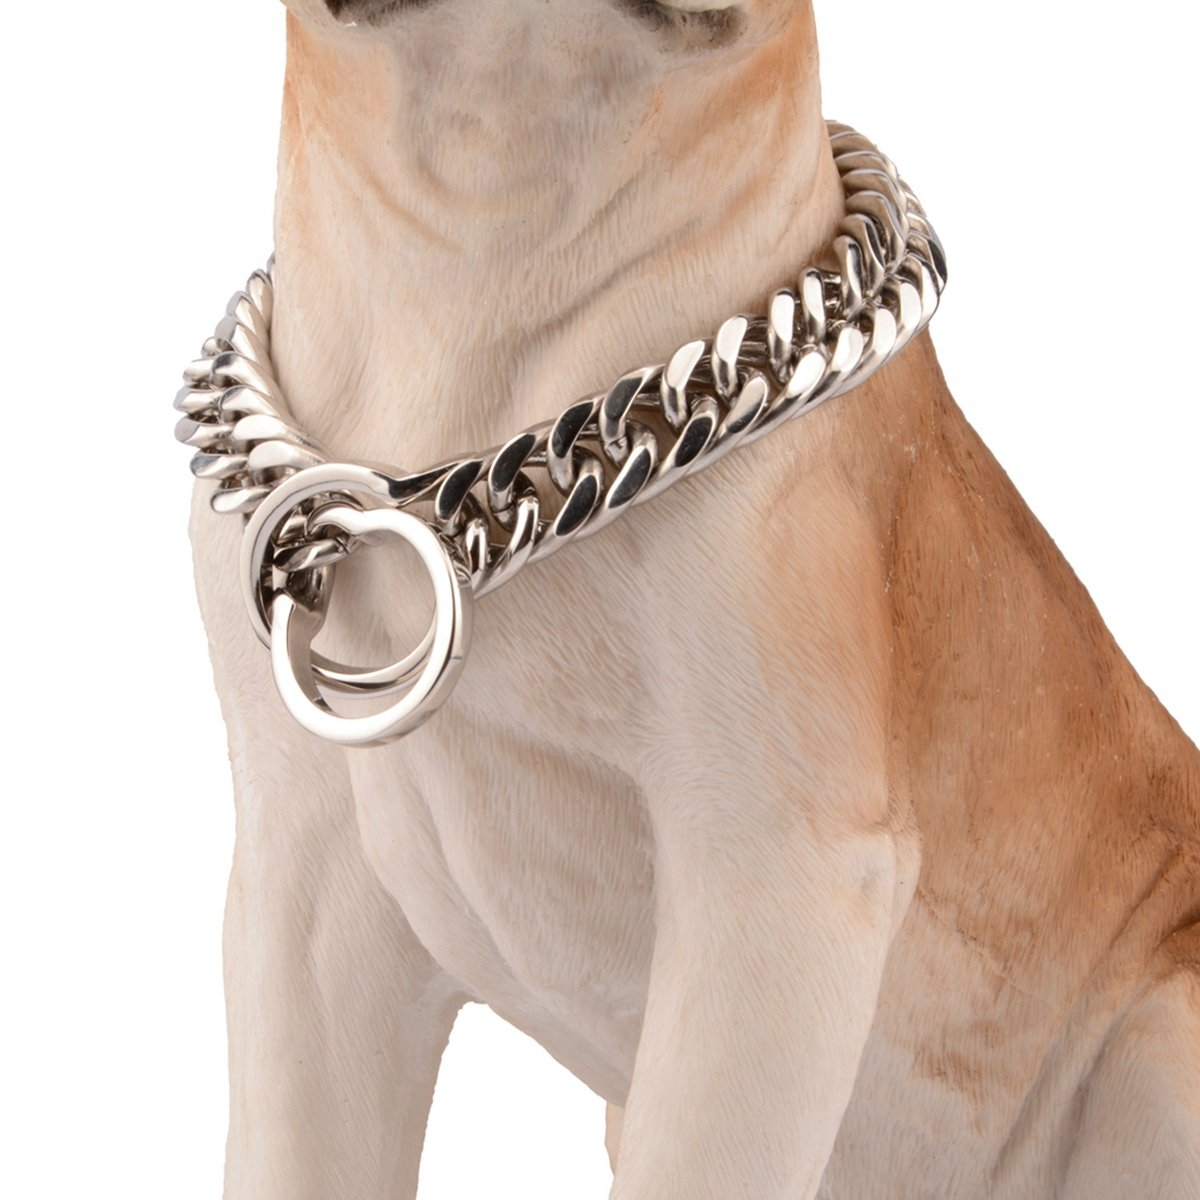 30inch recommend dog's neck 26inch Bestss Jewelry 16 18mm Silver Tone Double Curb Chain Stainless Steel Choker Strong Dog Pet Collar,14-36 Inches (16mm Wide, 30inch Recommend Dog's Neck 26inch)